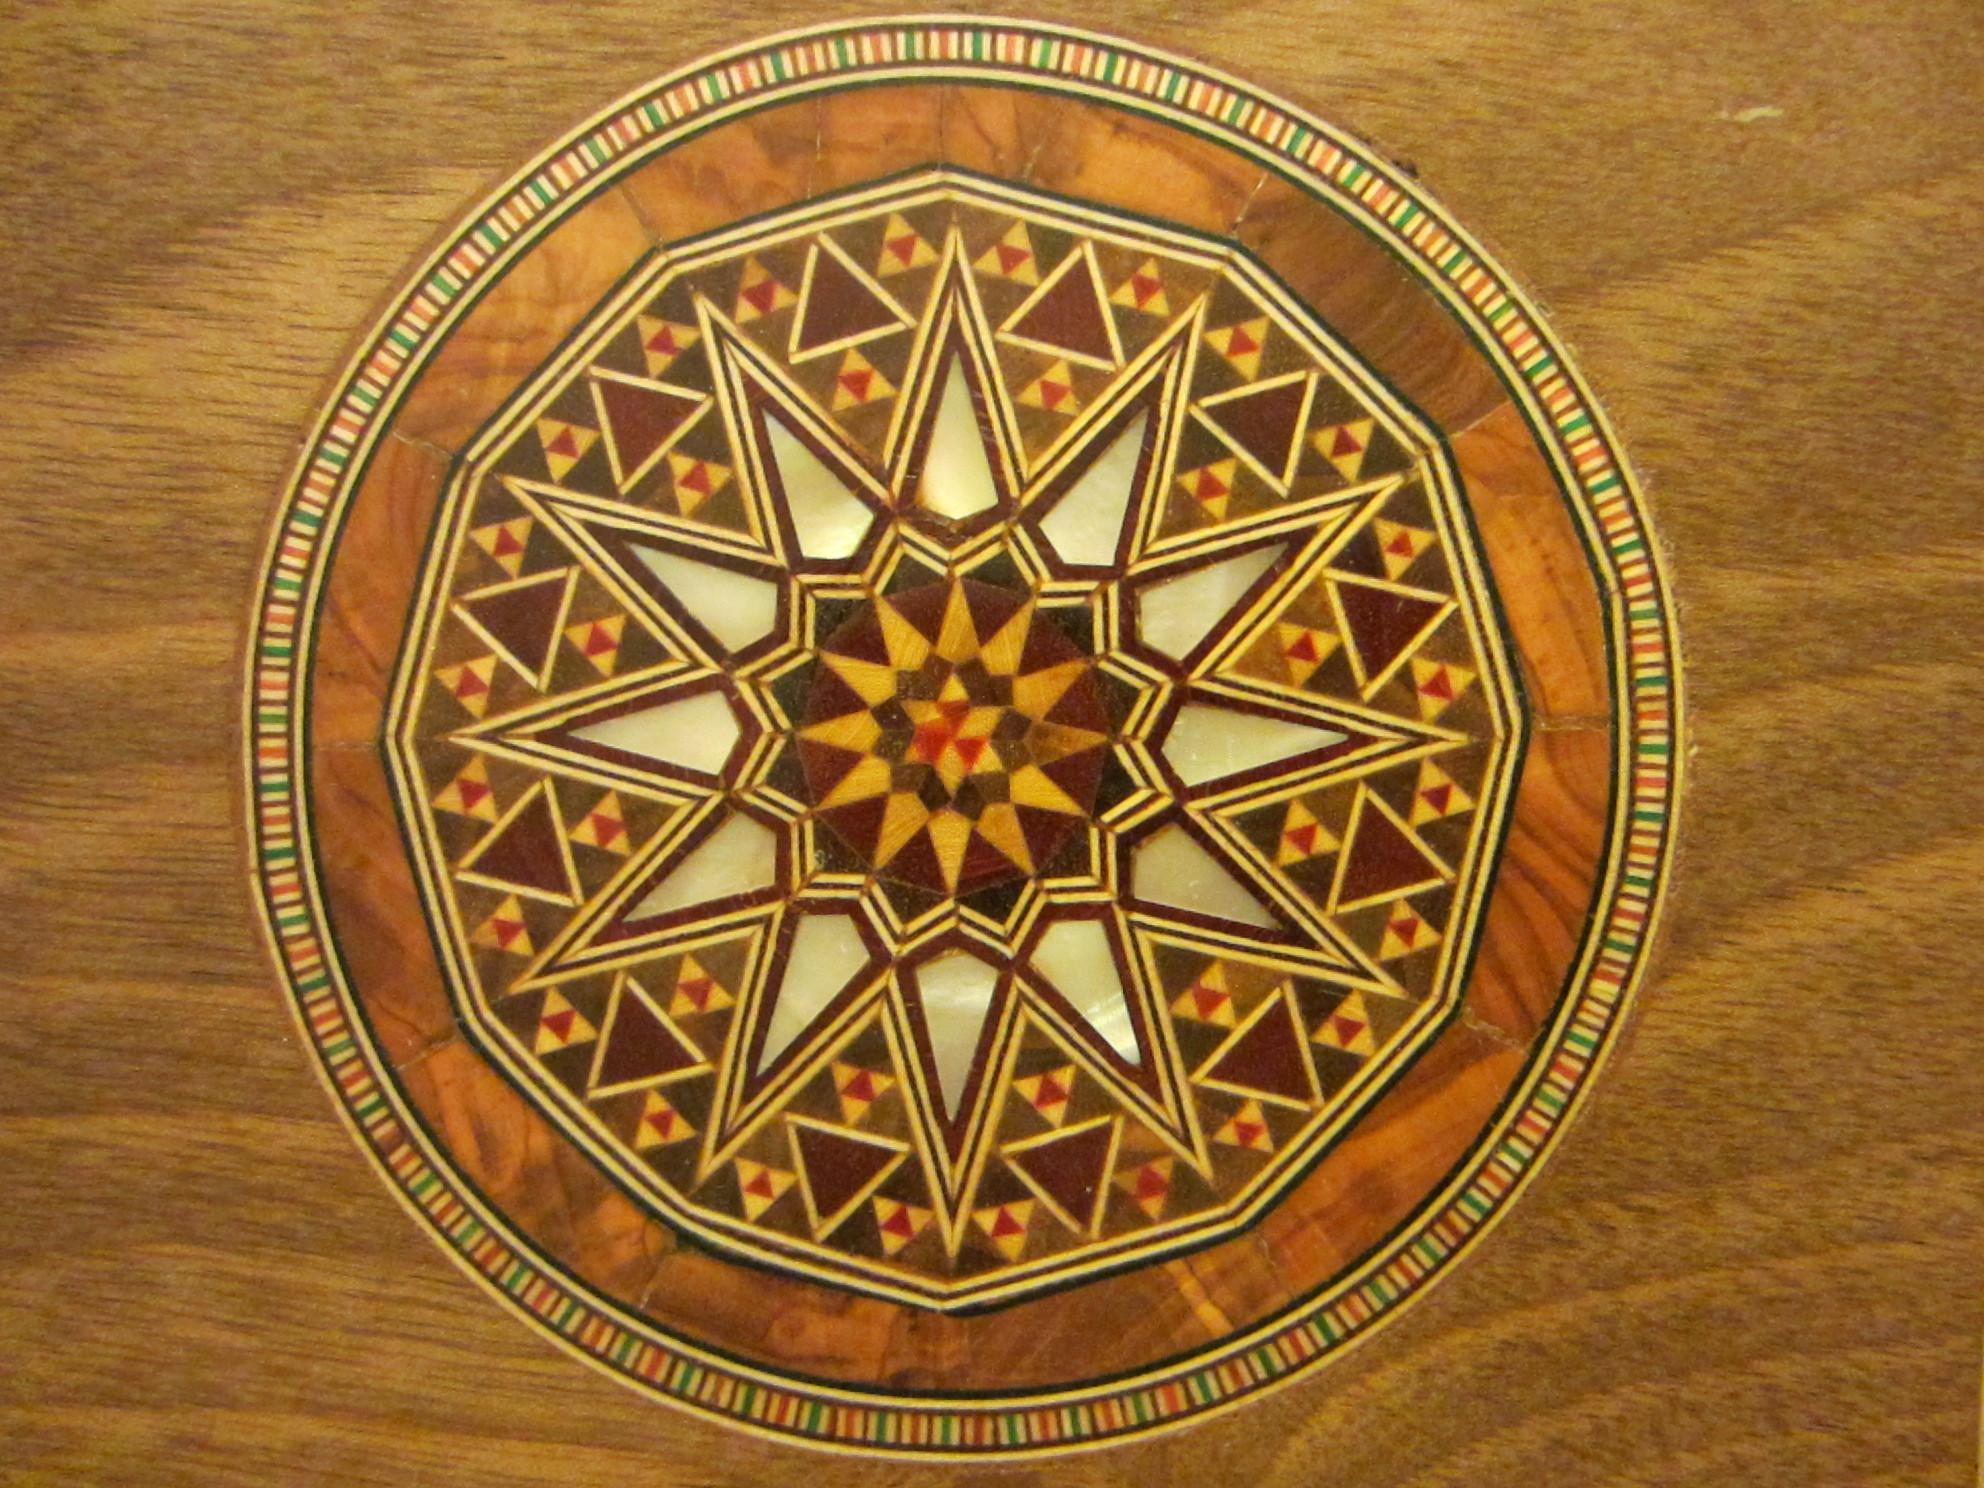 Art Deco Wood Inlaid Jewelry Box Ornate Geometric Design